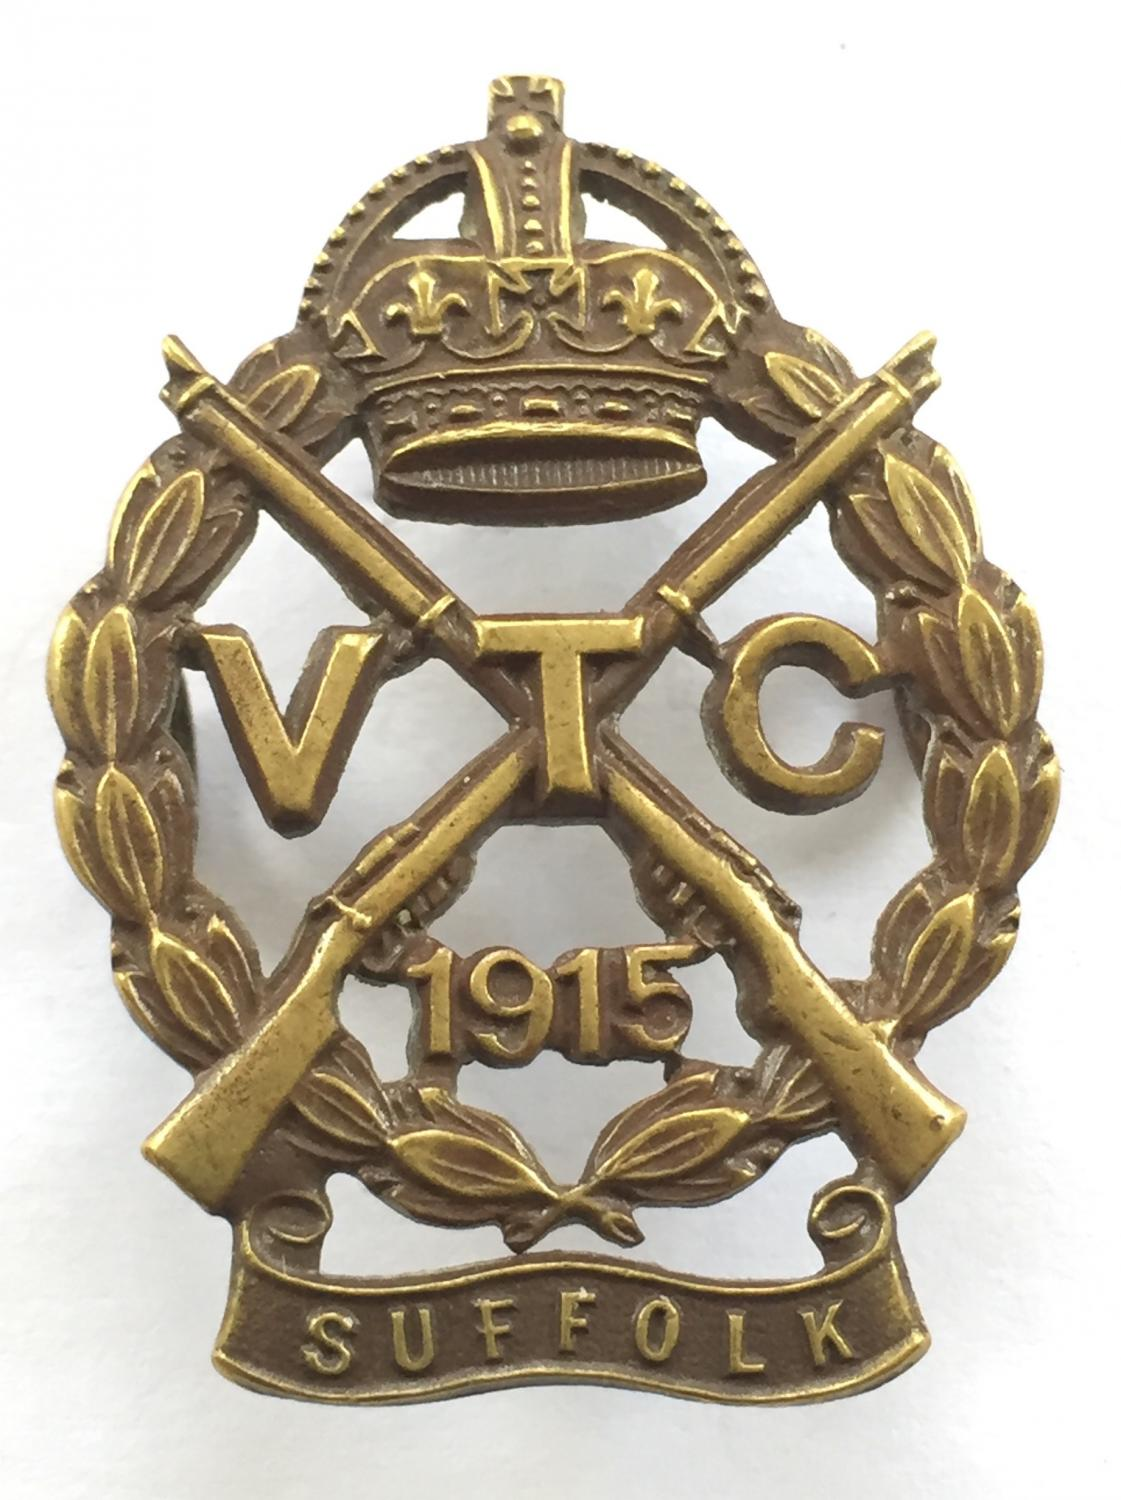 Suffolk VTC WW1 cap badge by Gaunt